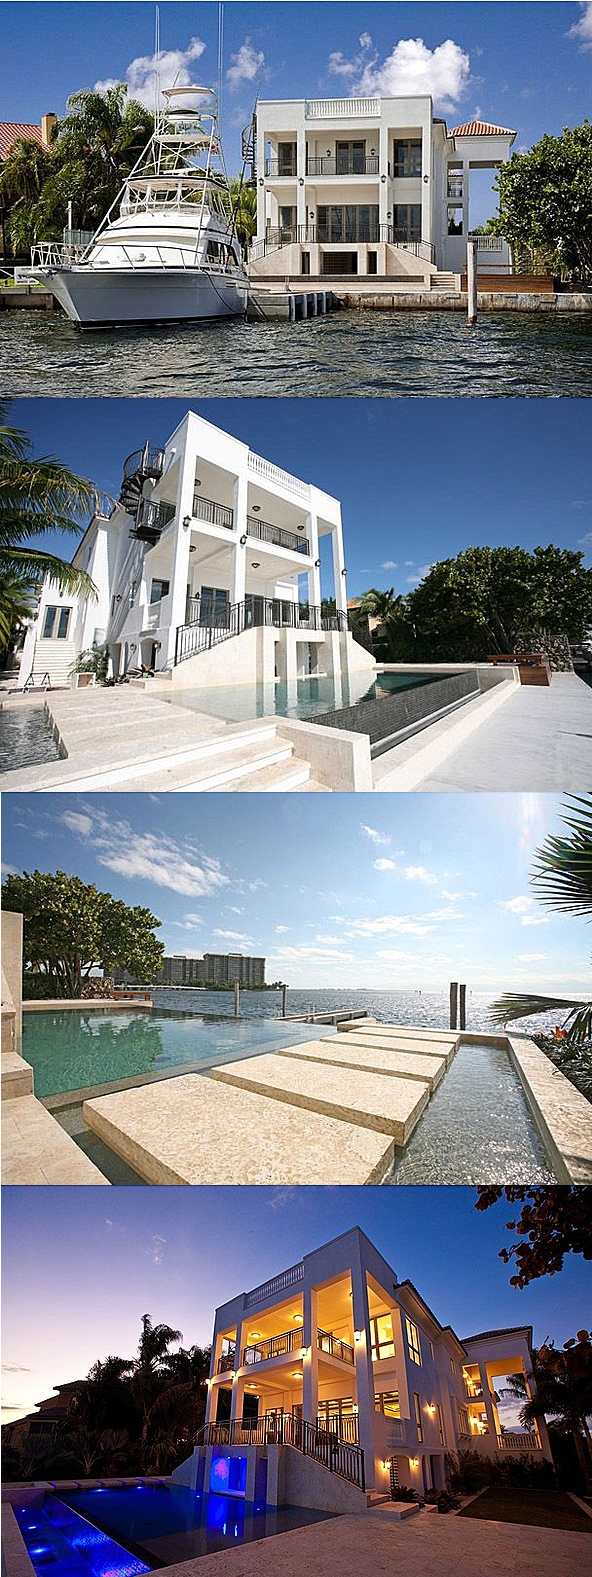 lebron-james-mansion